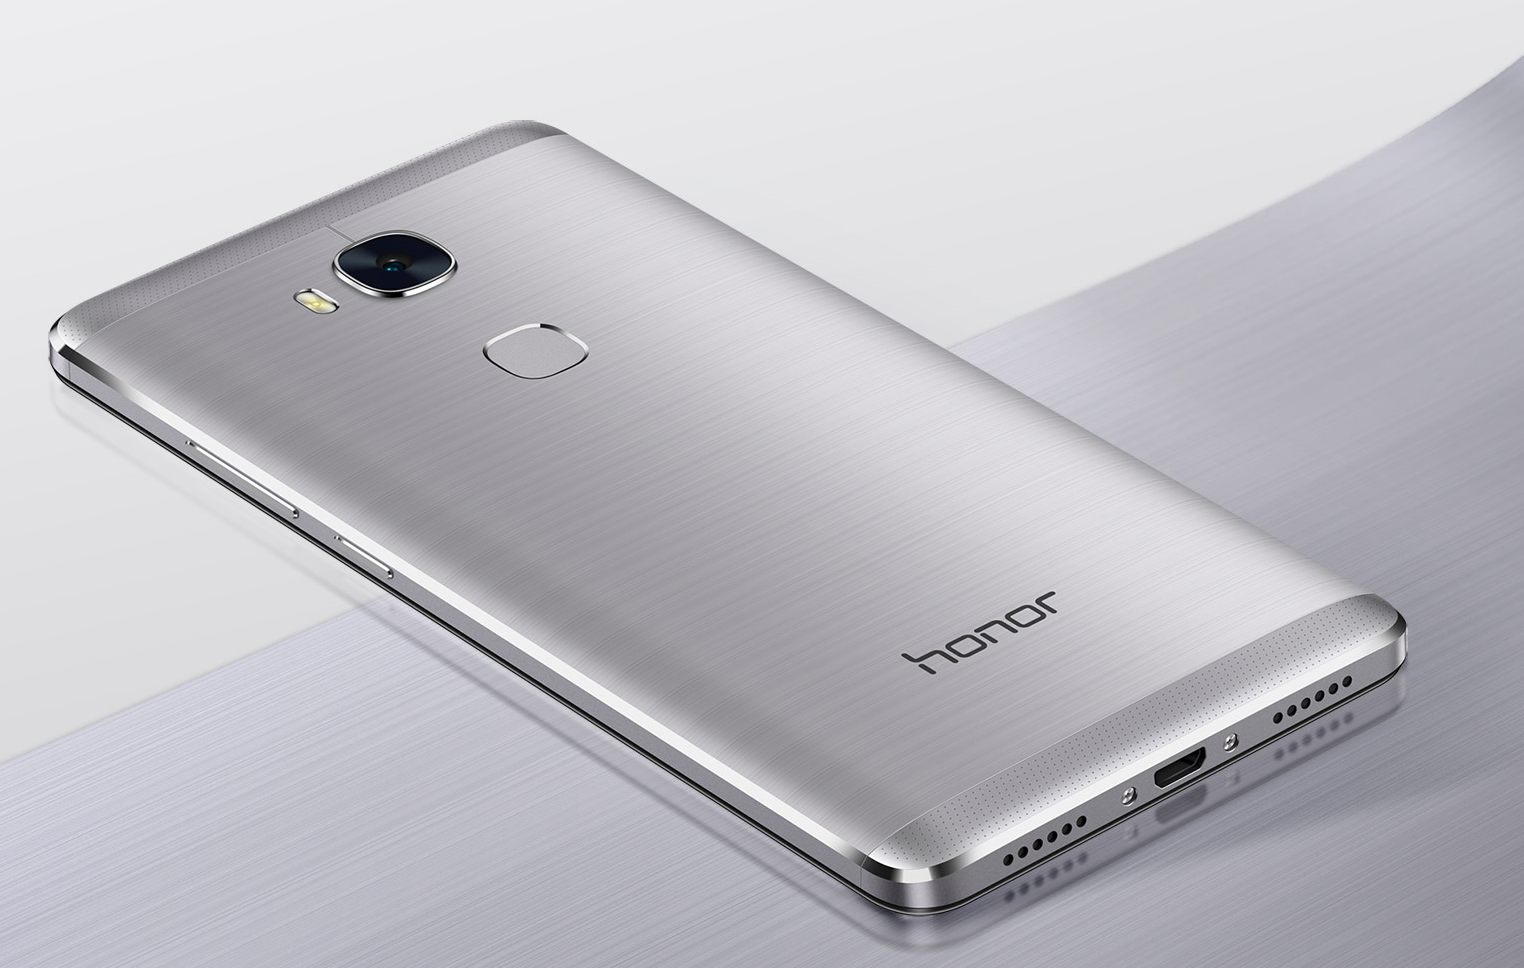 Huawei's Honor Sub-brand Has Sold 8 Million Honor 5X ...